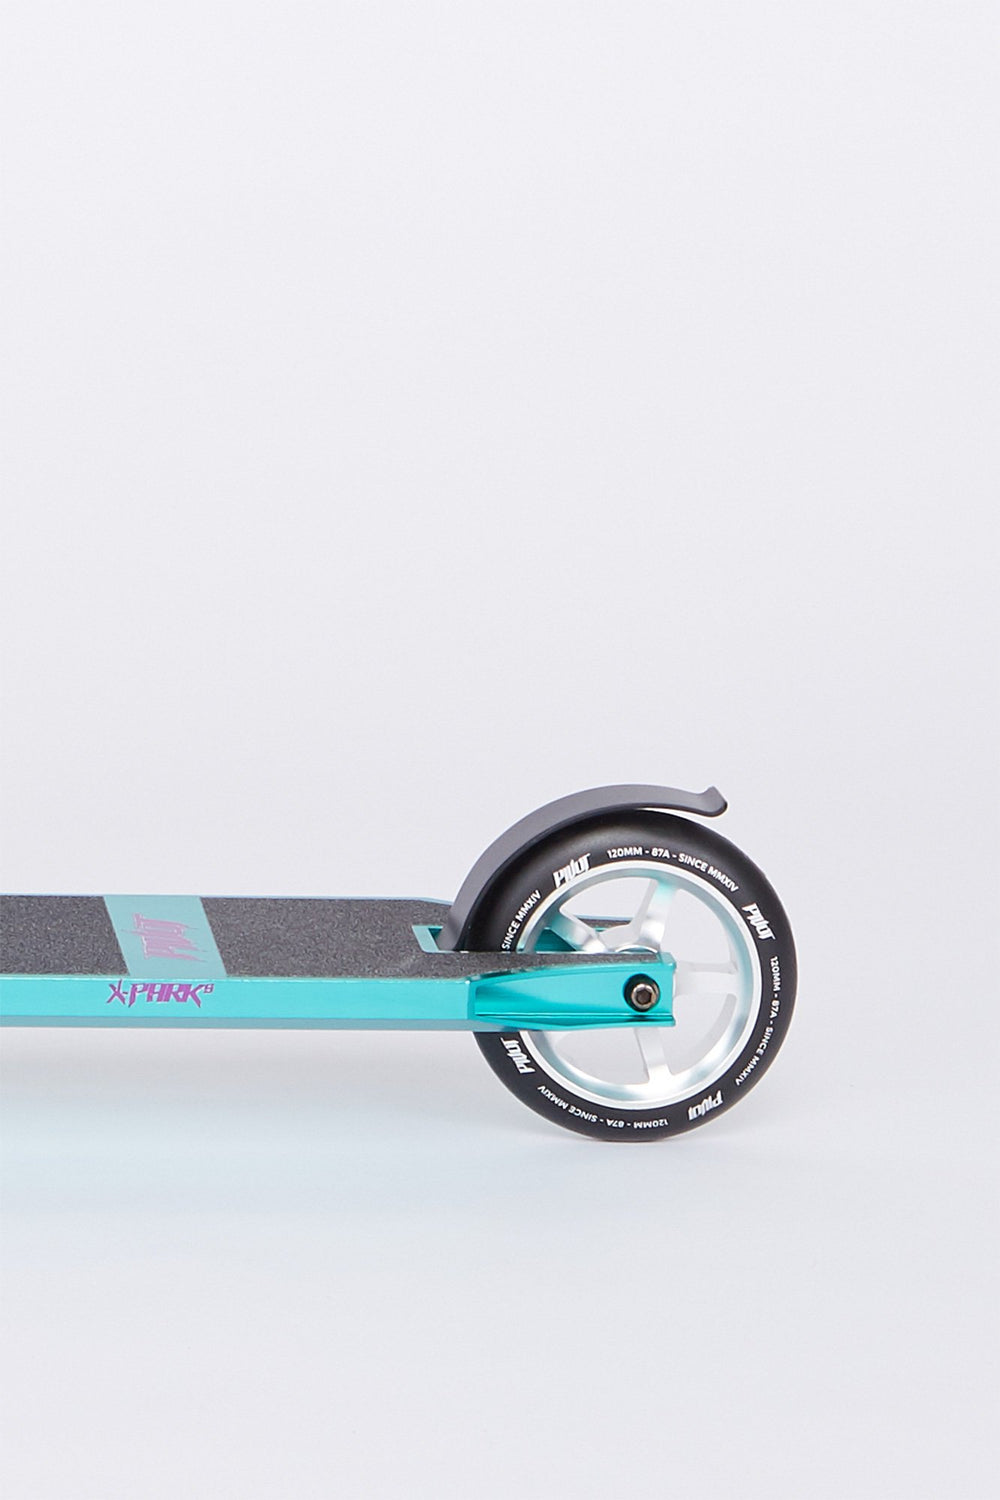 Pivot X-Park-S Turquoise Scooter Teal